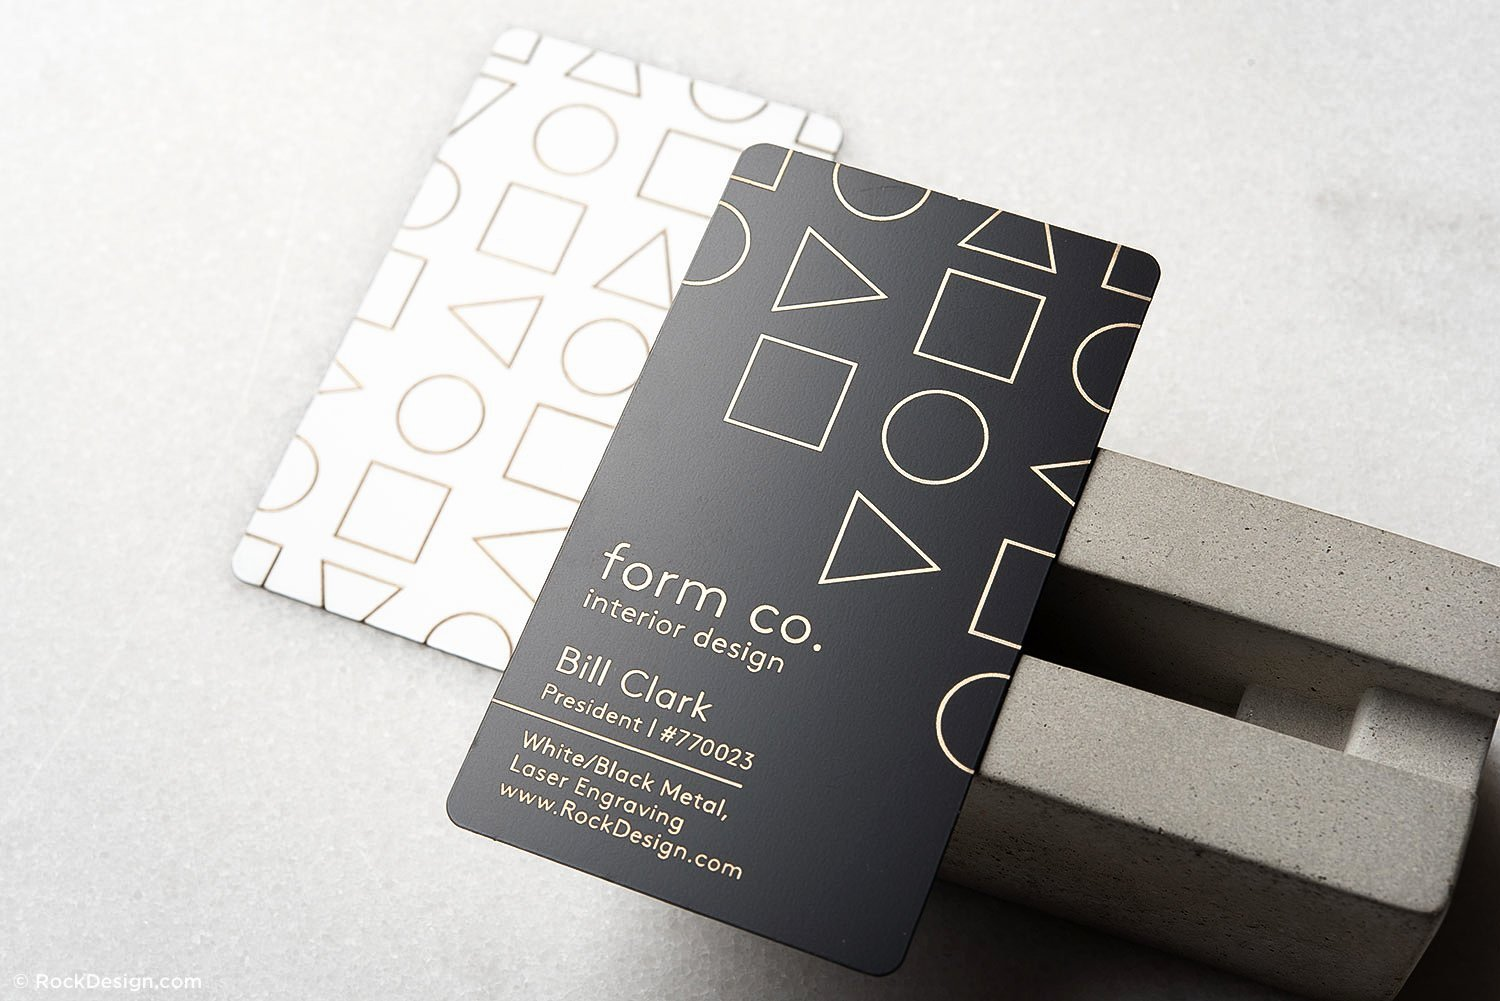 Interior Design Business Card Inspirational Simple and Clean Interior Design Quick Metal Business Card